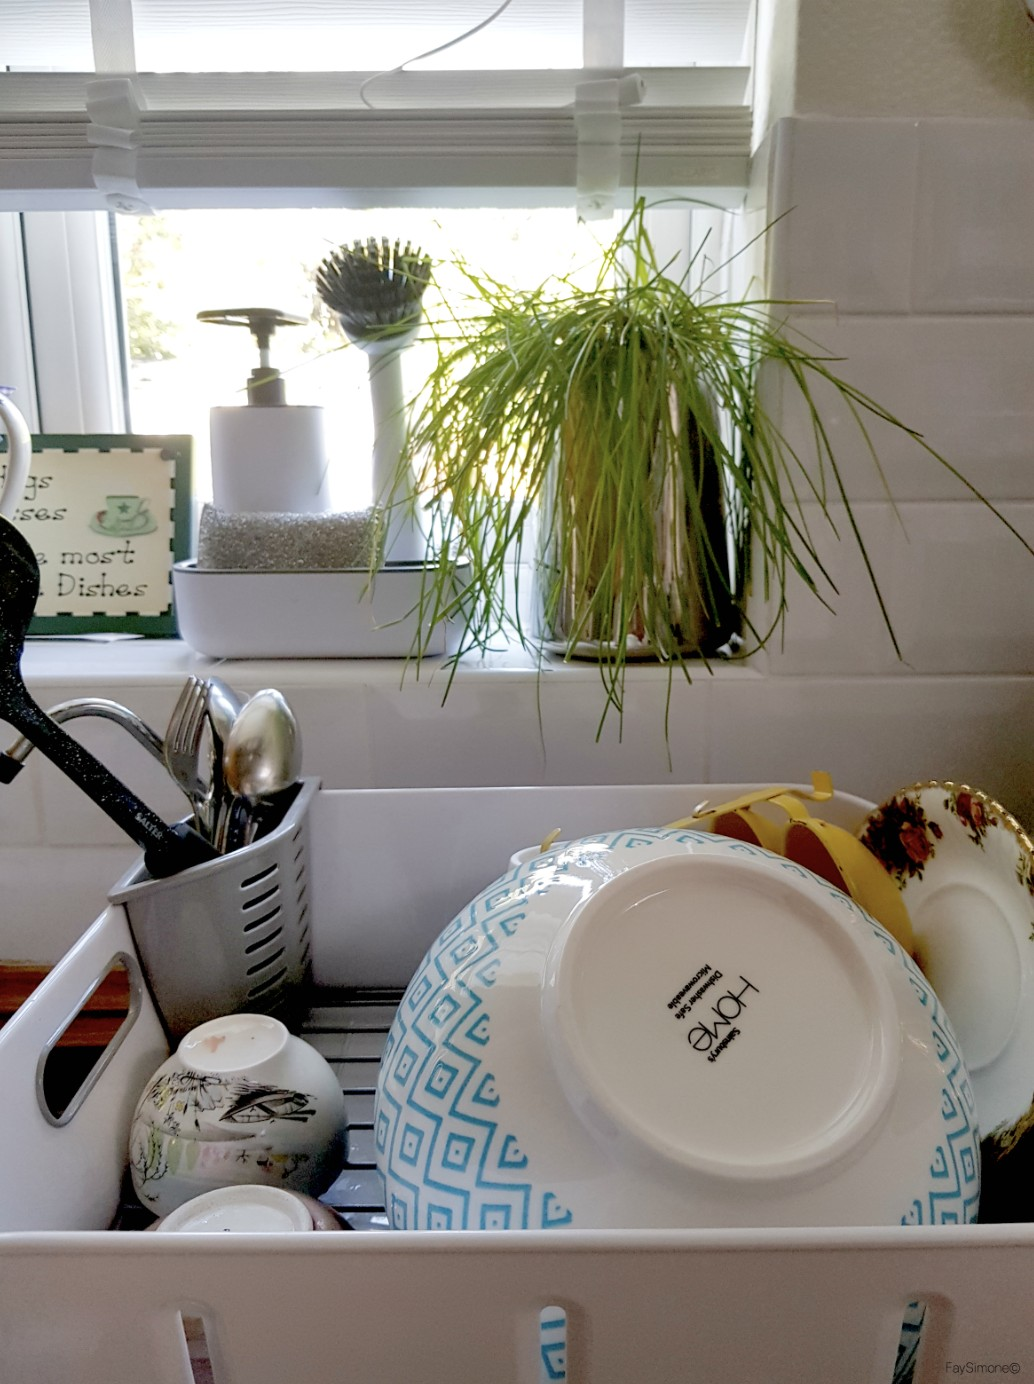 A Perfect Sunday, Sunday, What makes a perfect sunday, 5 things to do on Sunday, Preparation, Cleaning, washing up